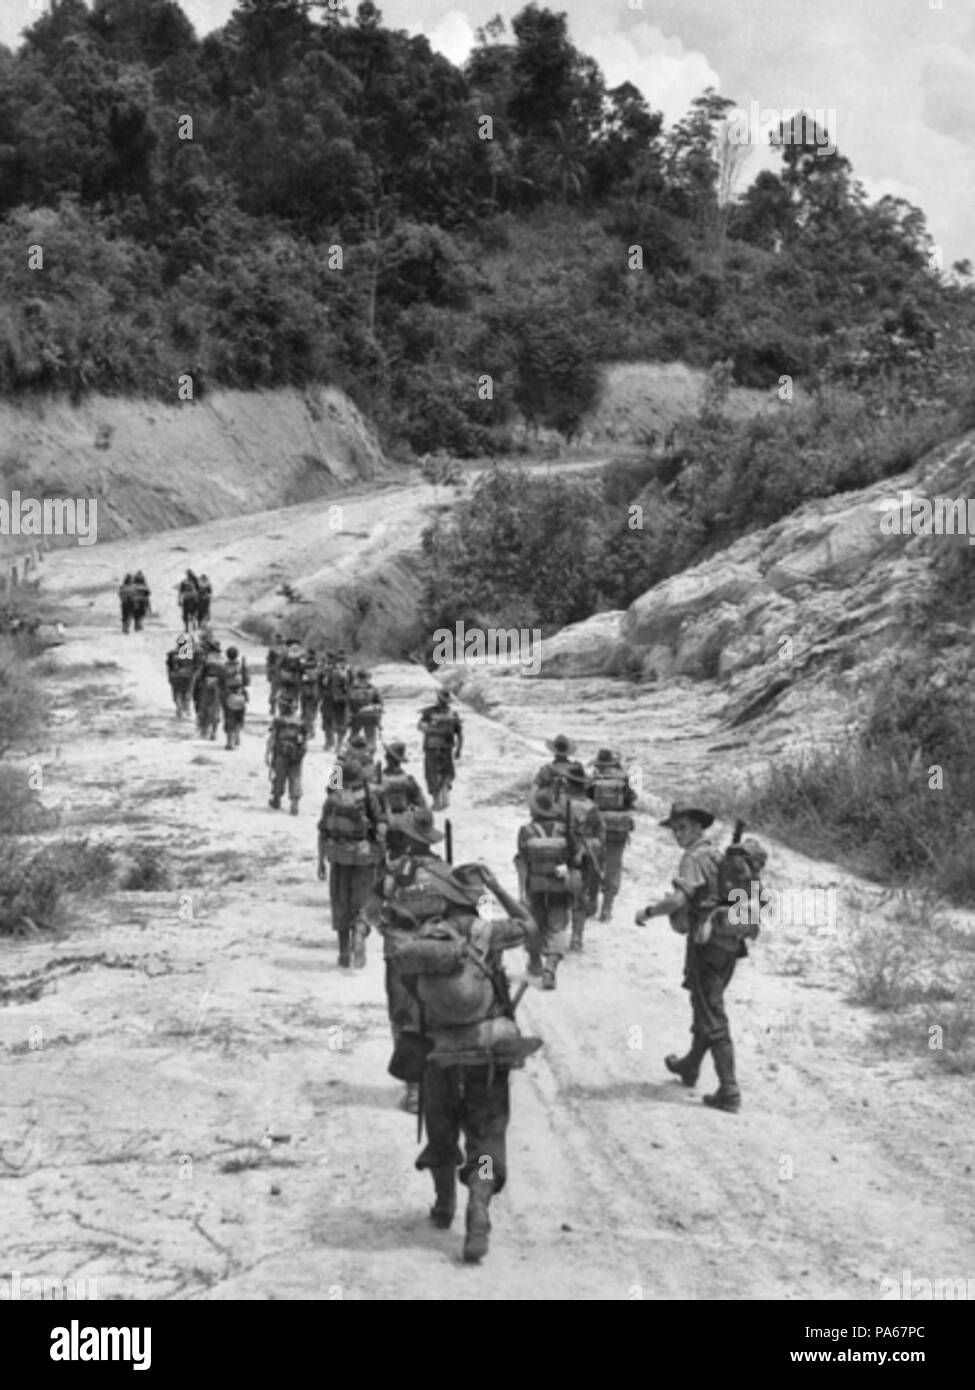 171 Members of B Company of the 2-2 Machine Gun Battalion moving along a road towards Brunei AWM 109273 - Stock Image